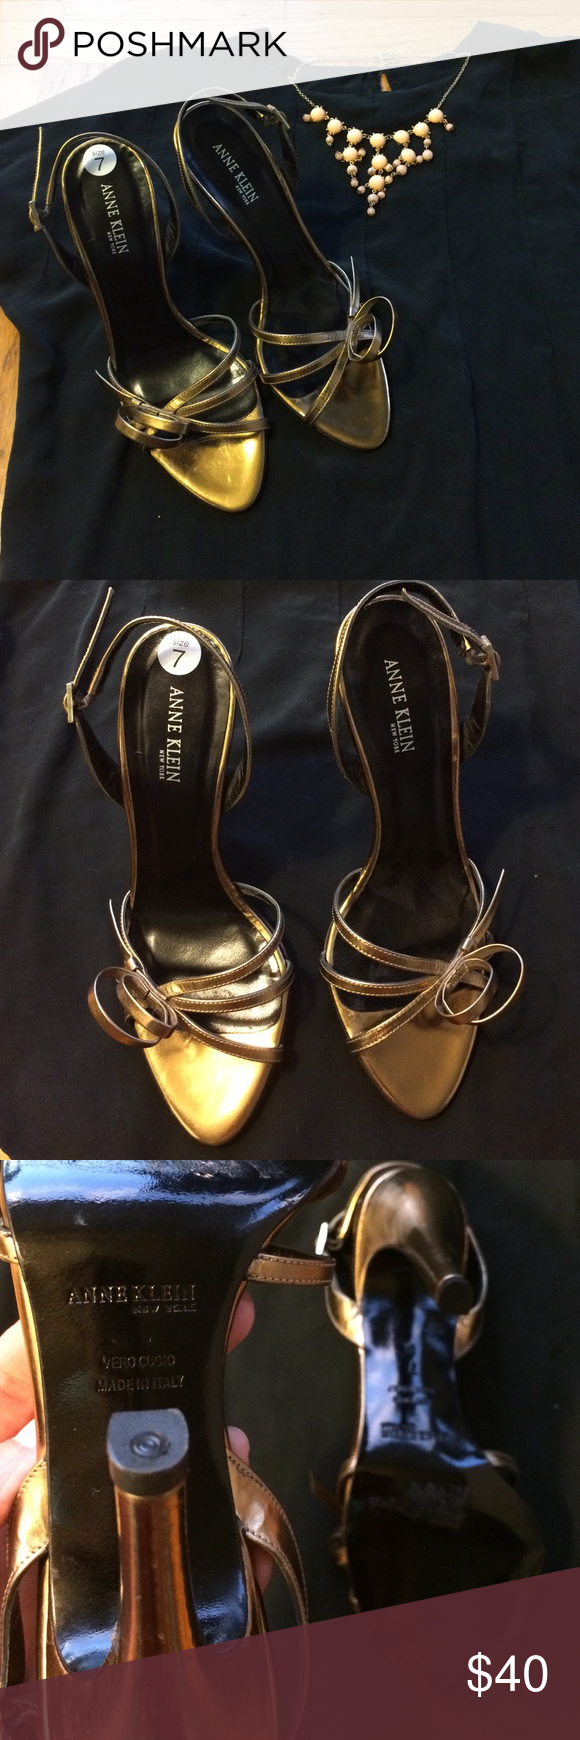 """New Anne Klein NY size 7 gold heels Excellent condition, no signs of wear. Size 7 Anne Klein stiletto gold metallic 4"""" heels with back strap. Made in Italy. Fun double circle/bow detail in front right side of heels. Great for weddings, as bridesmaid or guest, add this staple to your closet: 2 for 15% off Memorial Day weekend. Anne Klein Shoes Heels"""